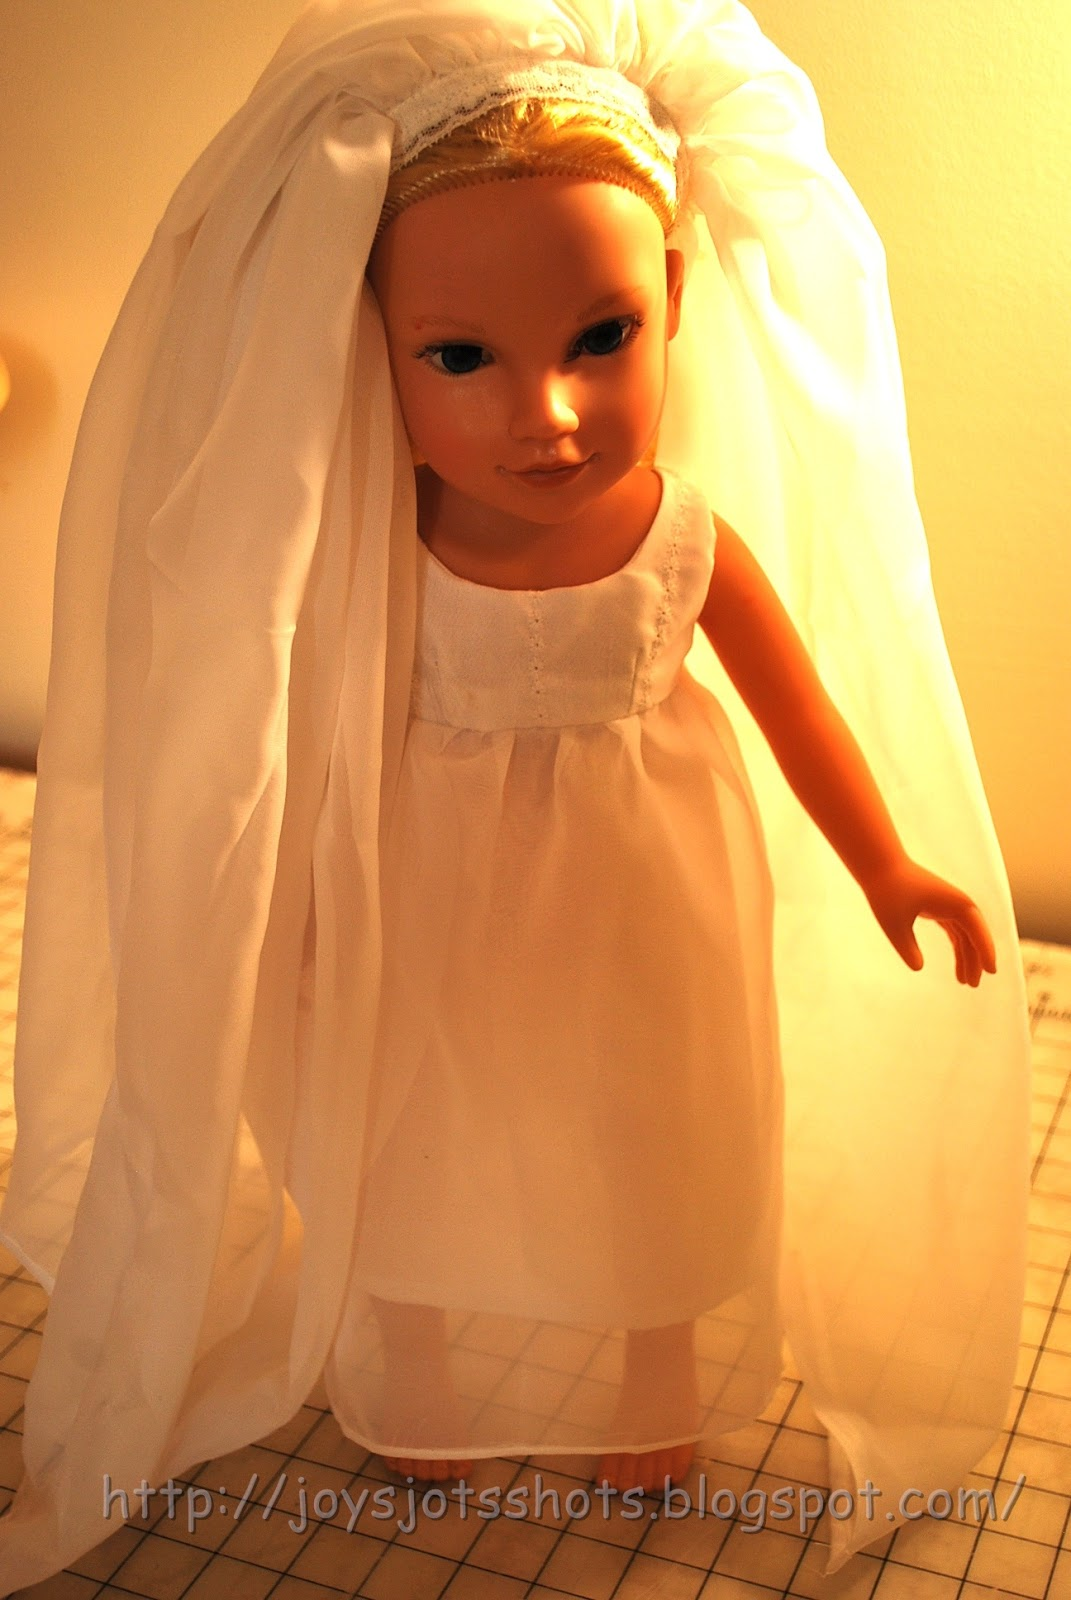 http://joysjotsshots.blogspot.com/2012/01/shear-curtain-elegant-wedding-doll.html